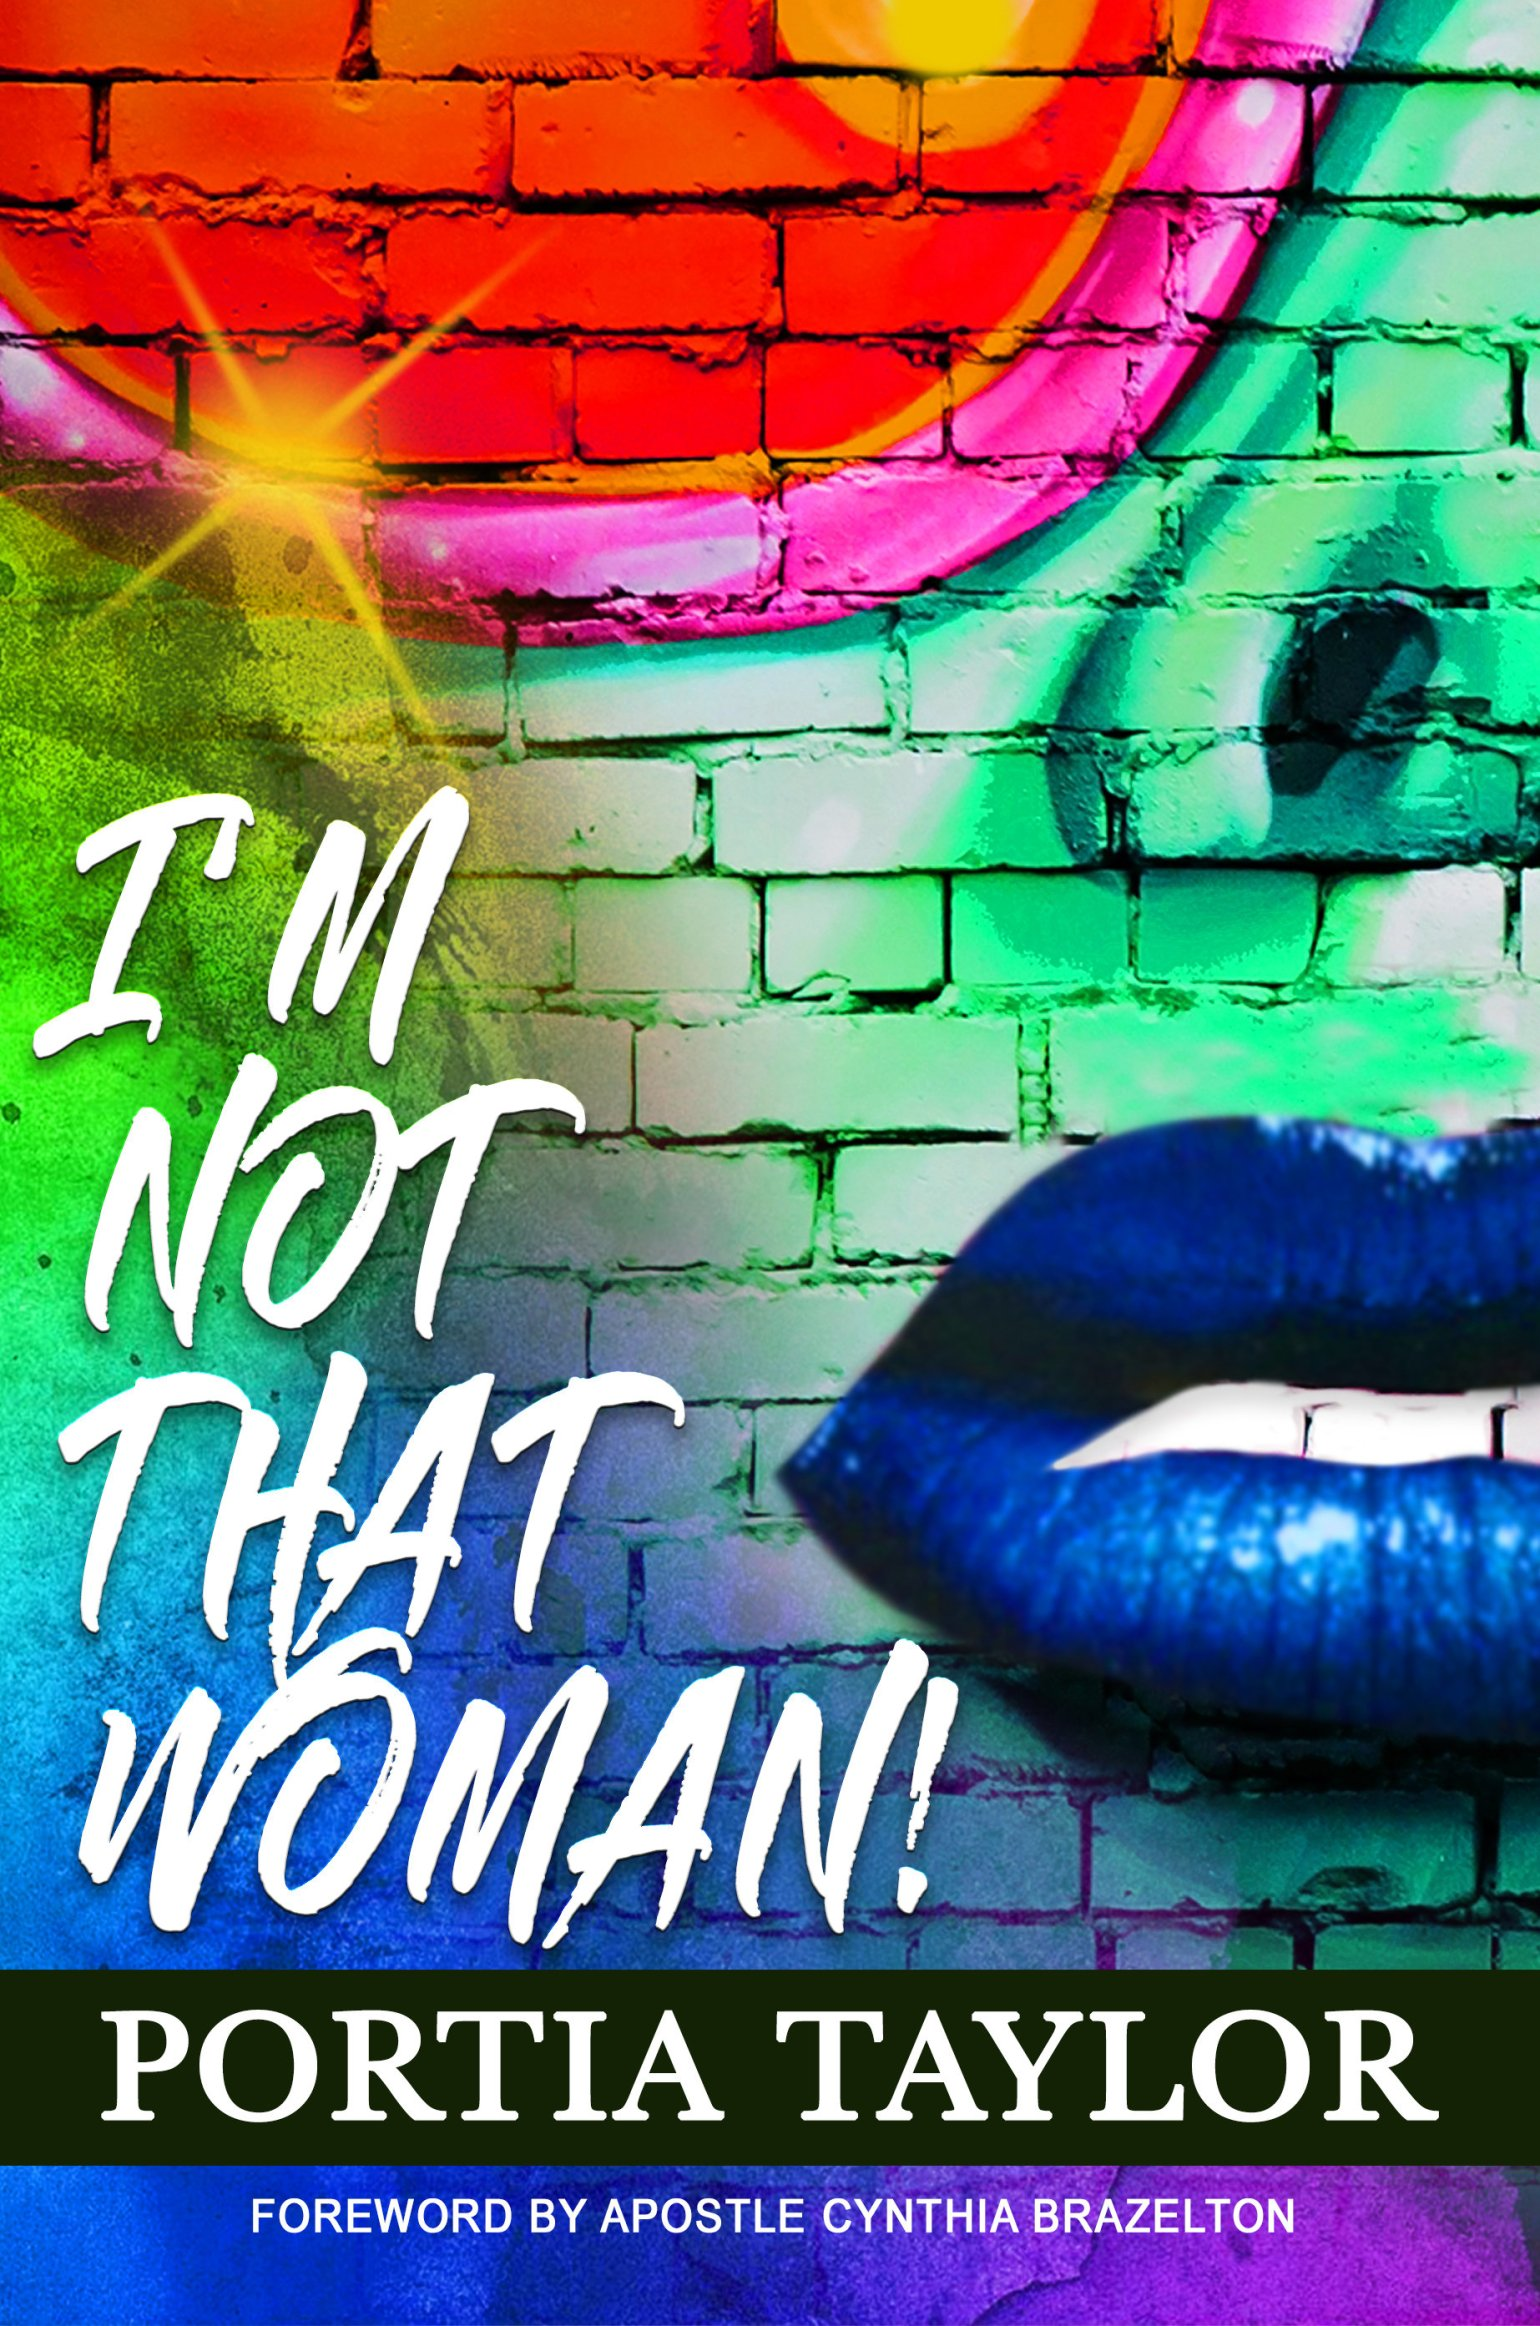 I'm Not That Woman (Hardcover) by Portia Taylor 978-1642547818